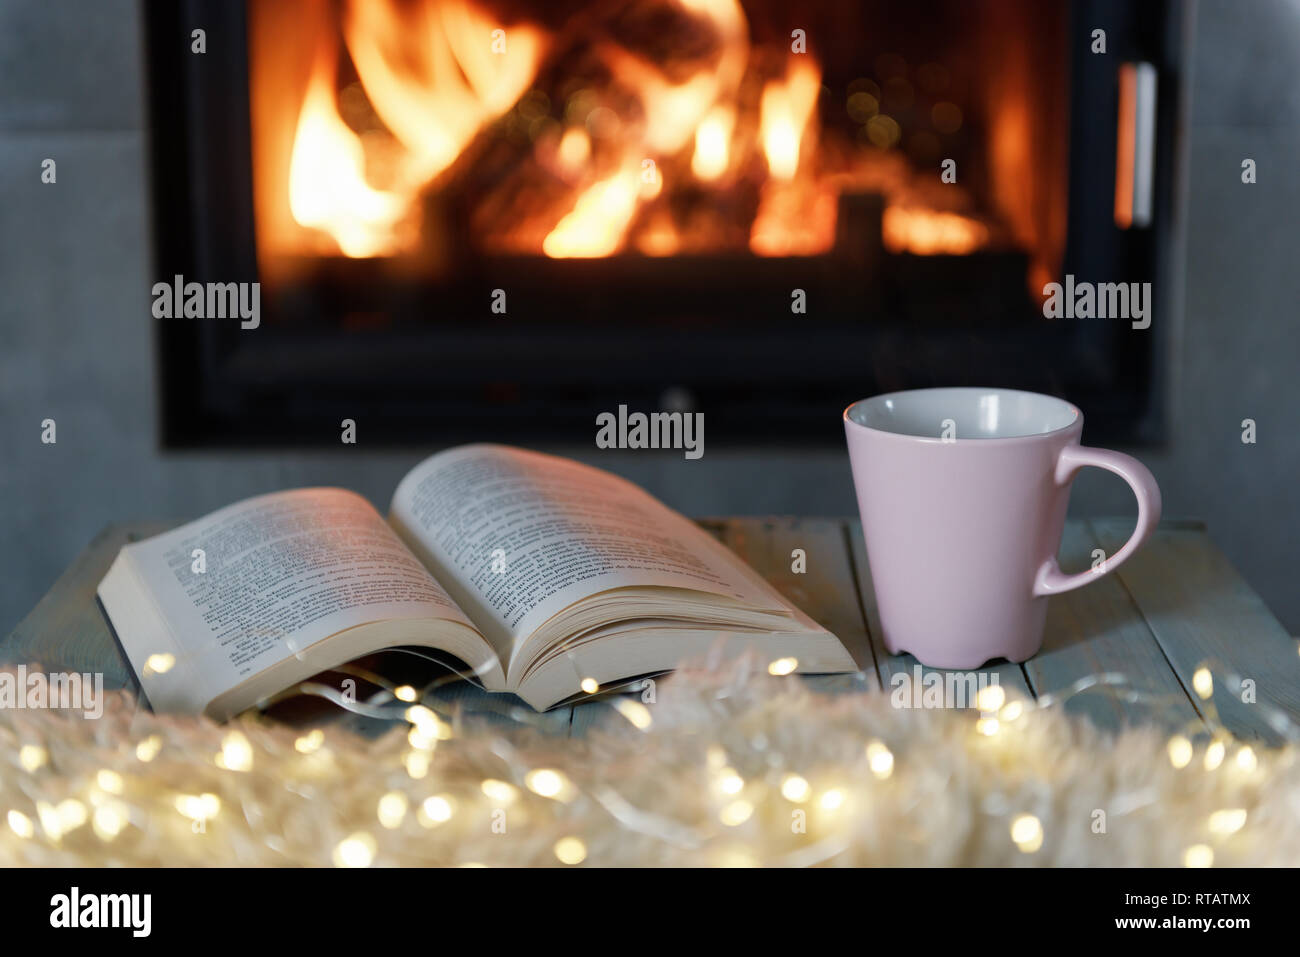 Book and cup of tea near burning fireplace. Hygge concept - Stock Image